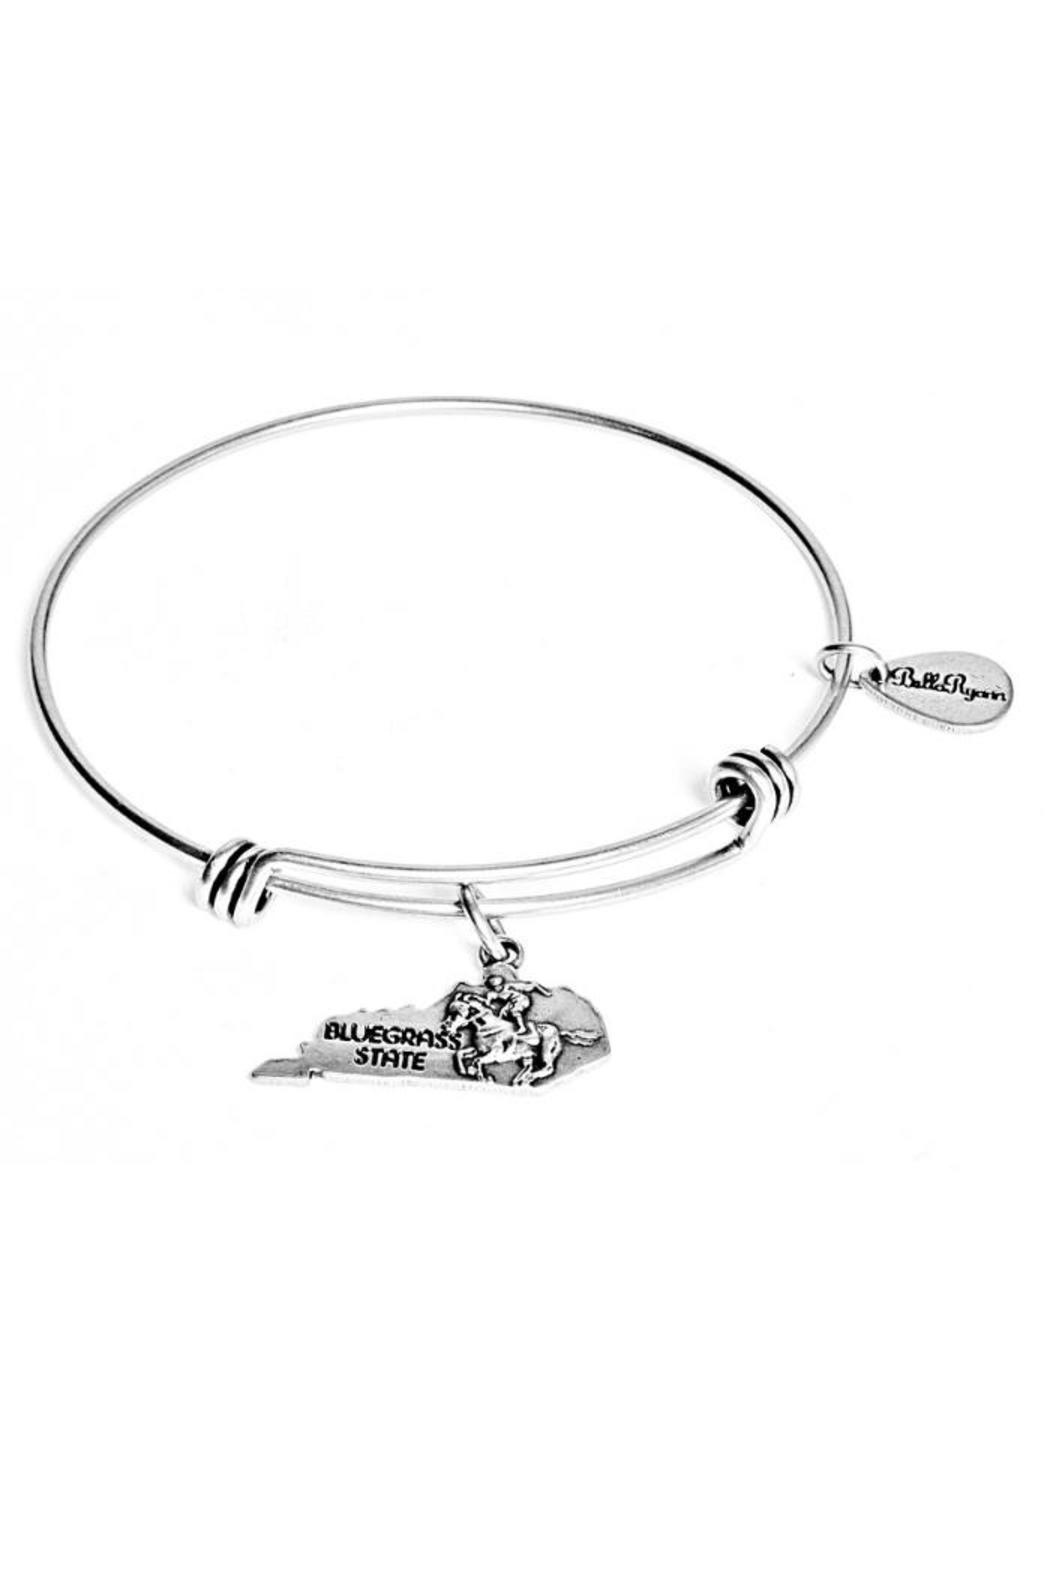 Bella Ryann Silver Bangle Kentucky - Main Image